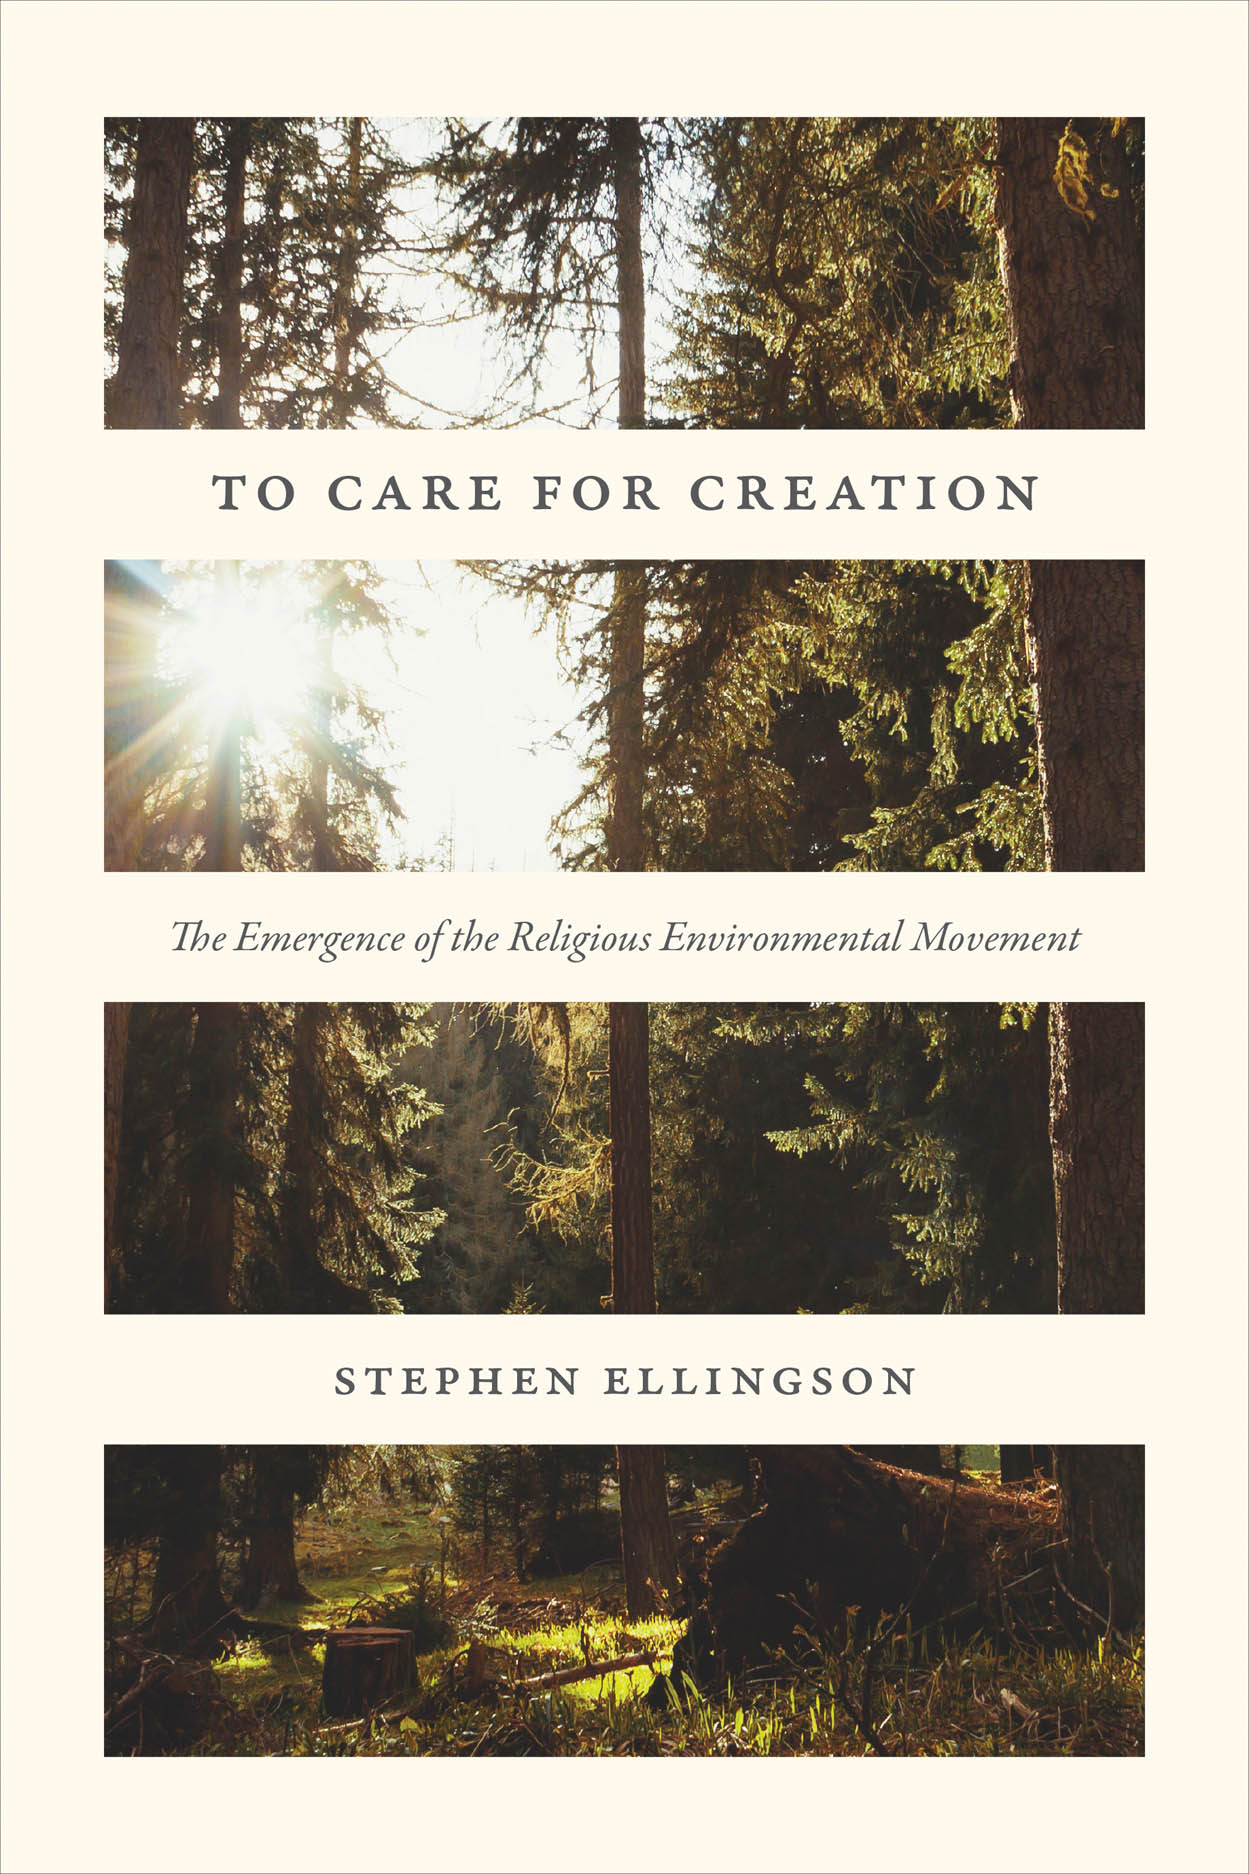 To Care for Creation: The Emergence of the Religious Environmental Movement